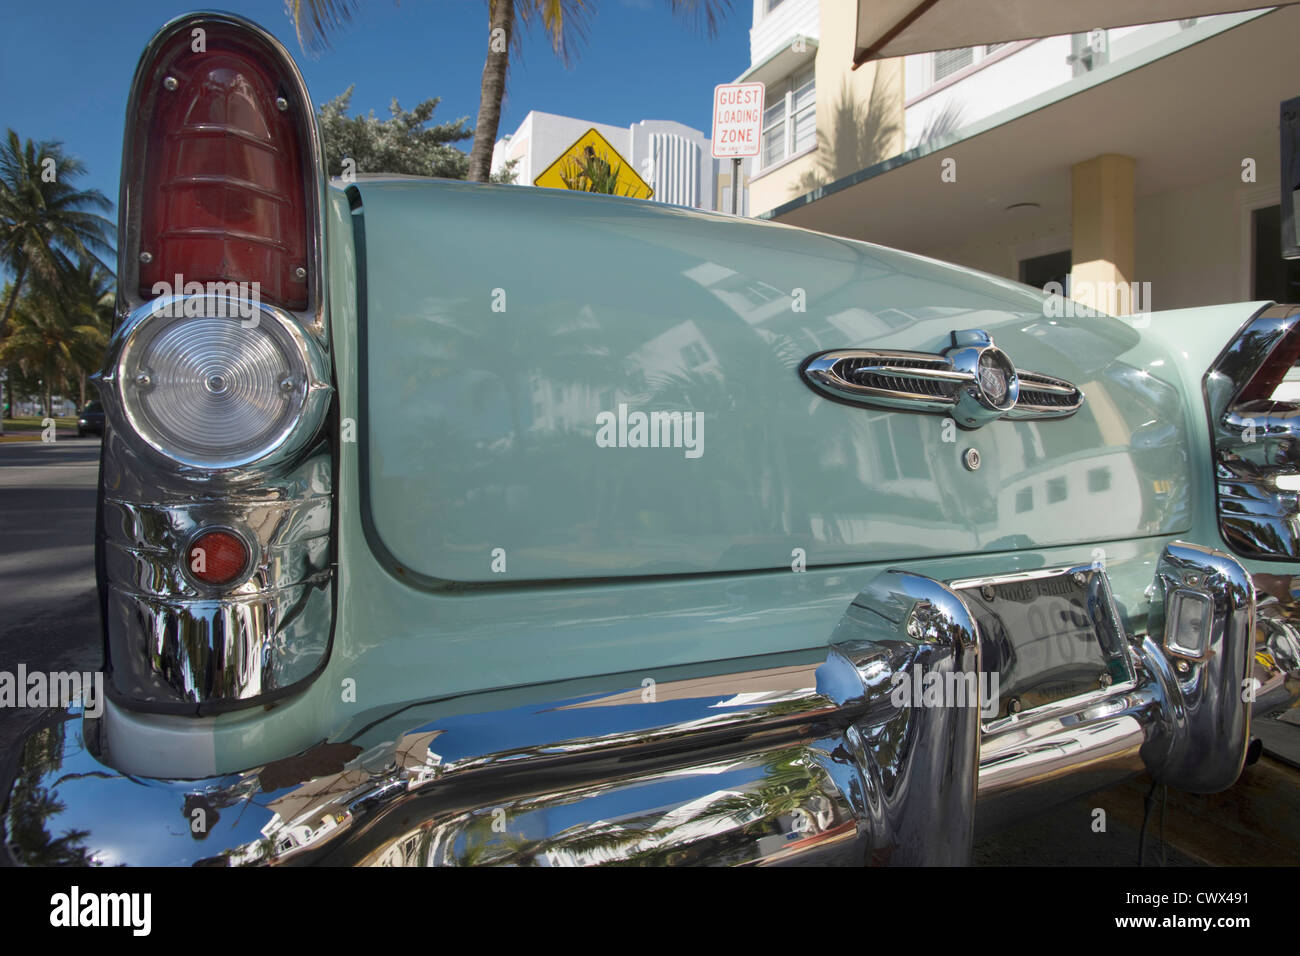 TAIL FIN OF CLASSIC 1950S TWO TONE BUICK CONVERTIBLE AVALON HOTEL OCEAN DRIVE SOUTH BEACH MIAMI BEACH FLORIDA USA - Stock Image